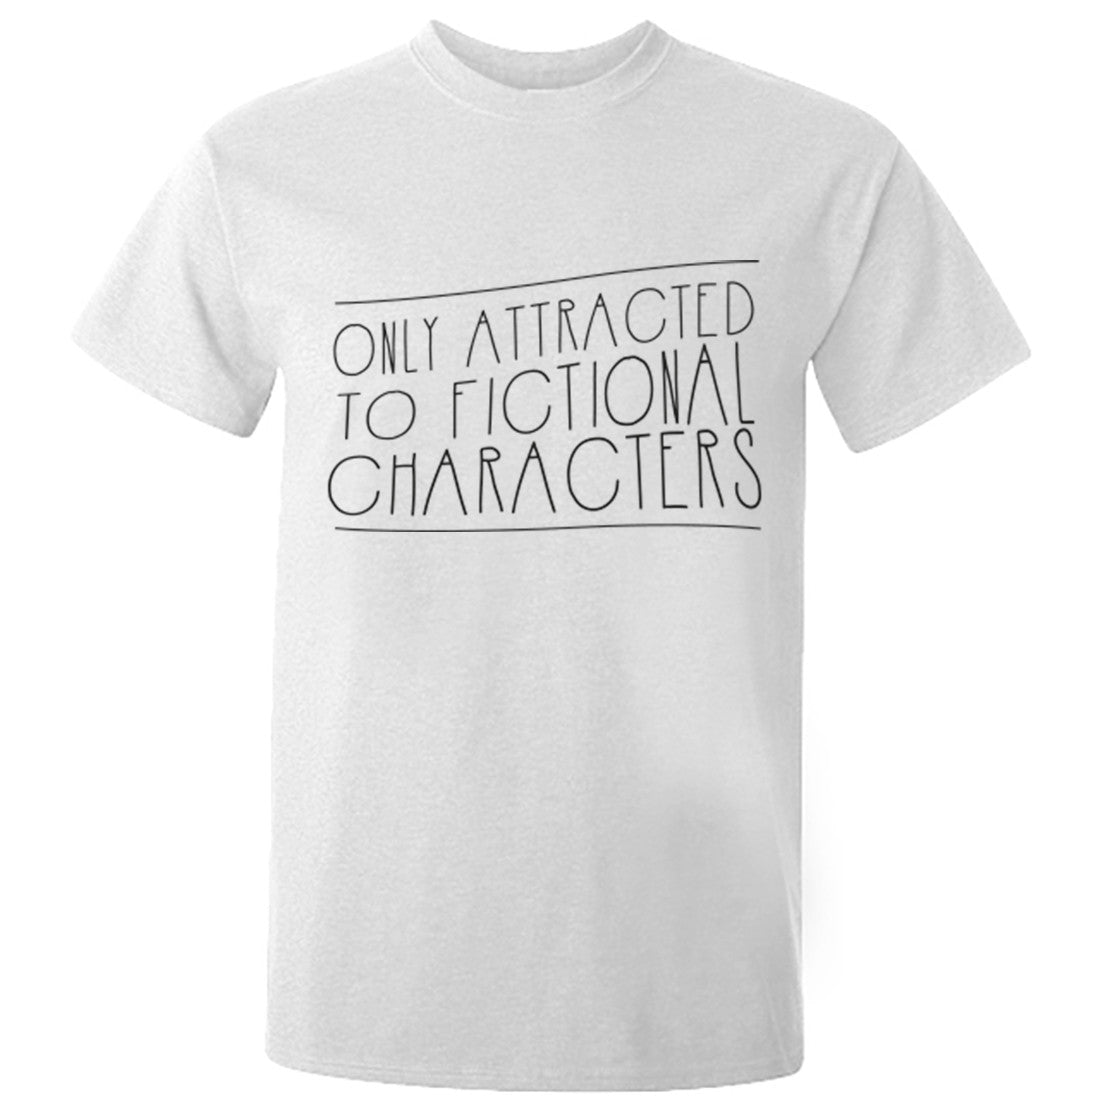 Only Attracted To Fictional Characters Unisex Fit T-Shirt K0699 - Illustrated Identity Ltd.